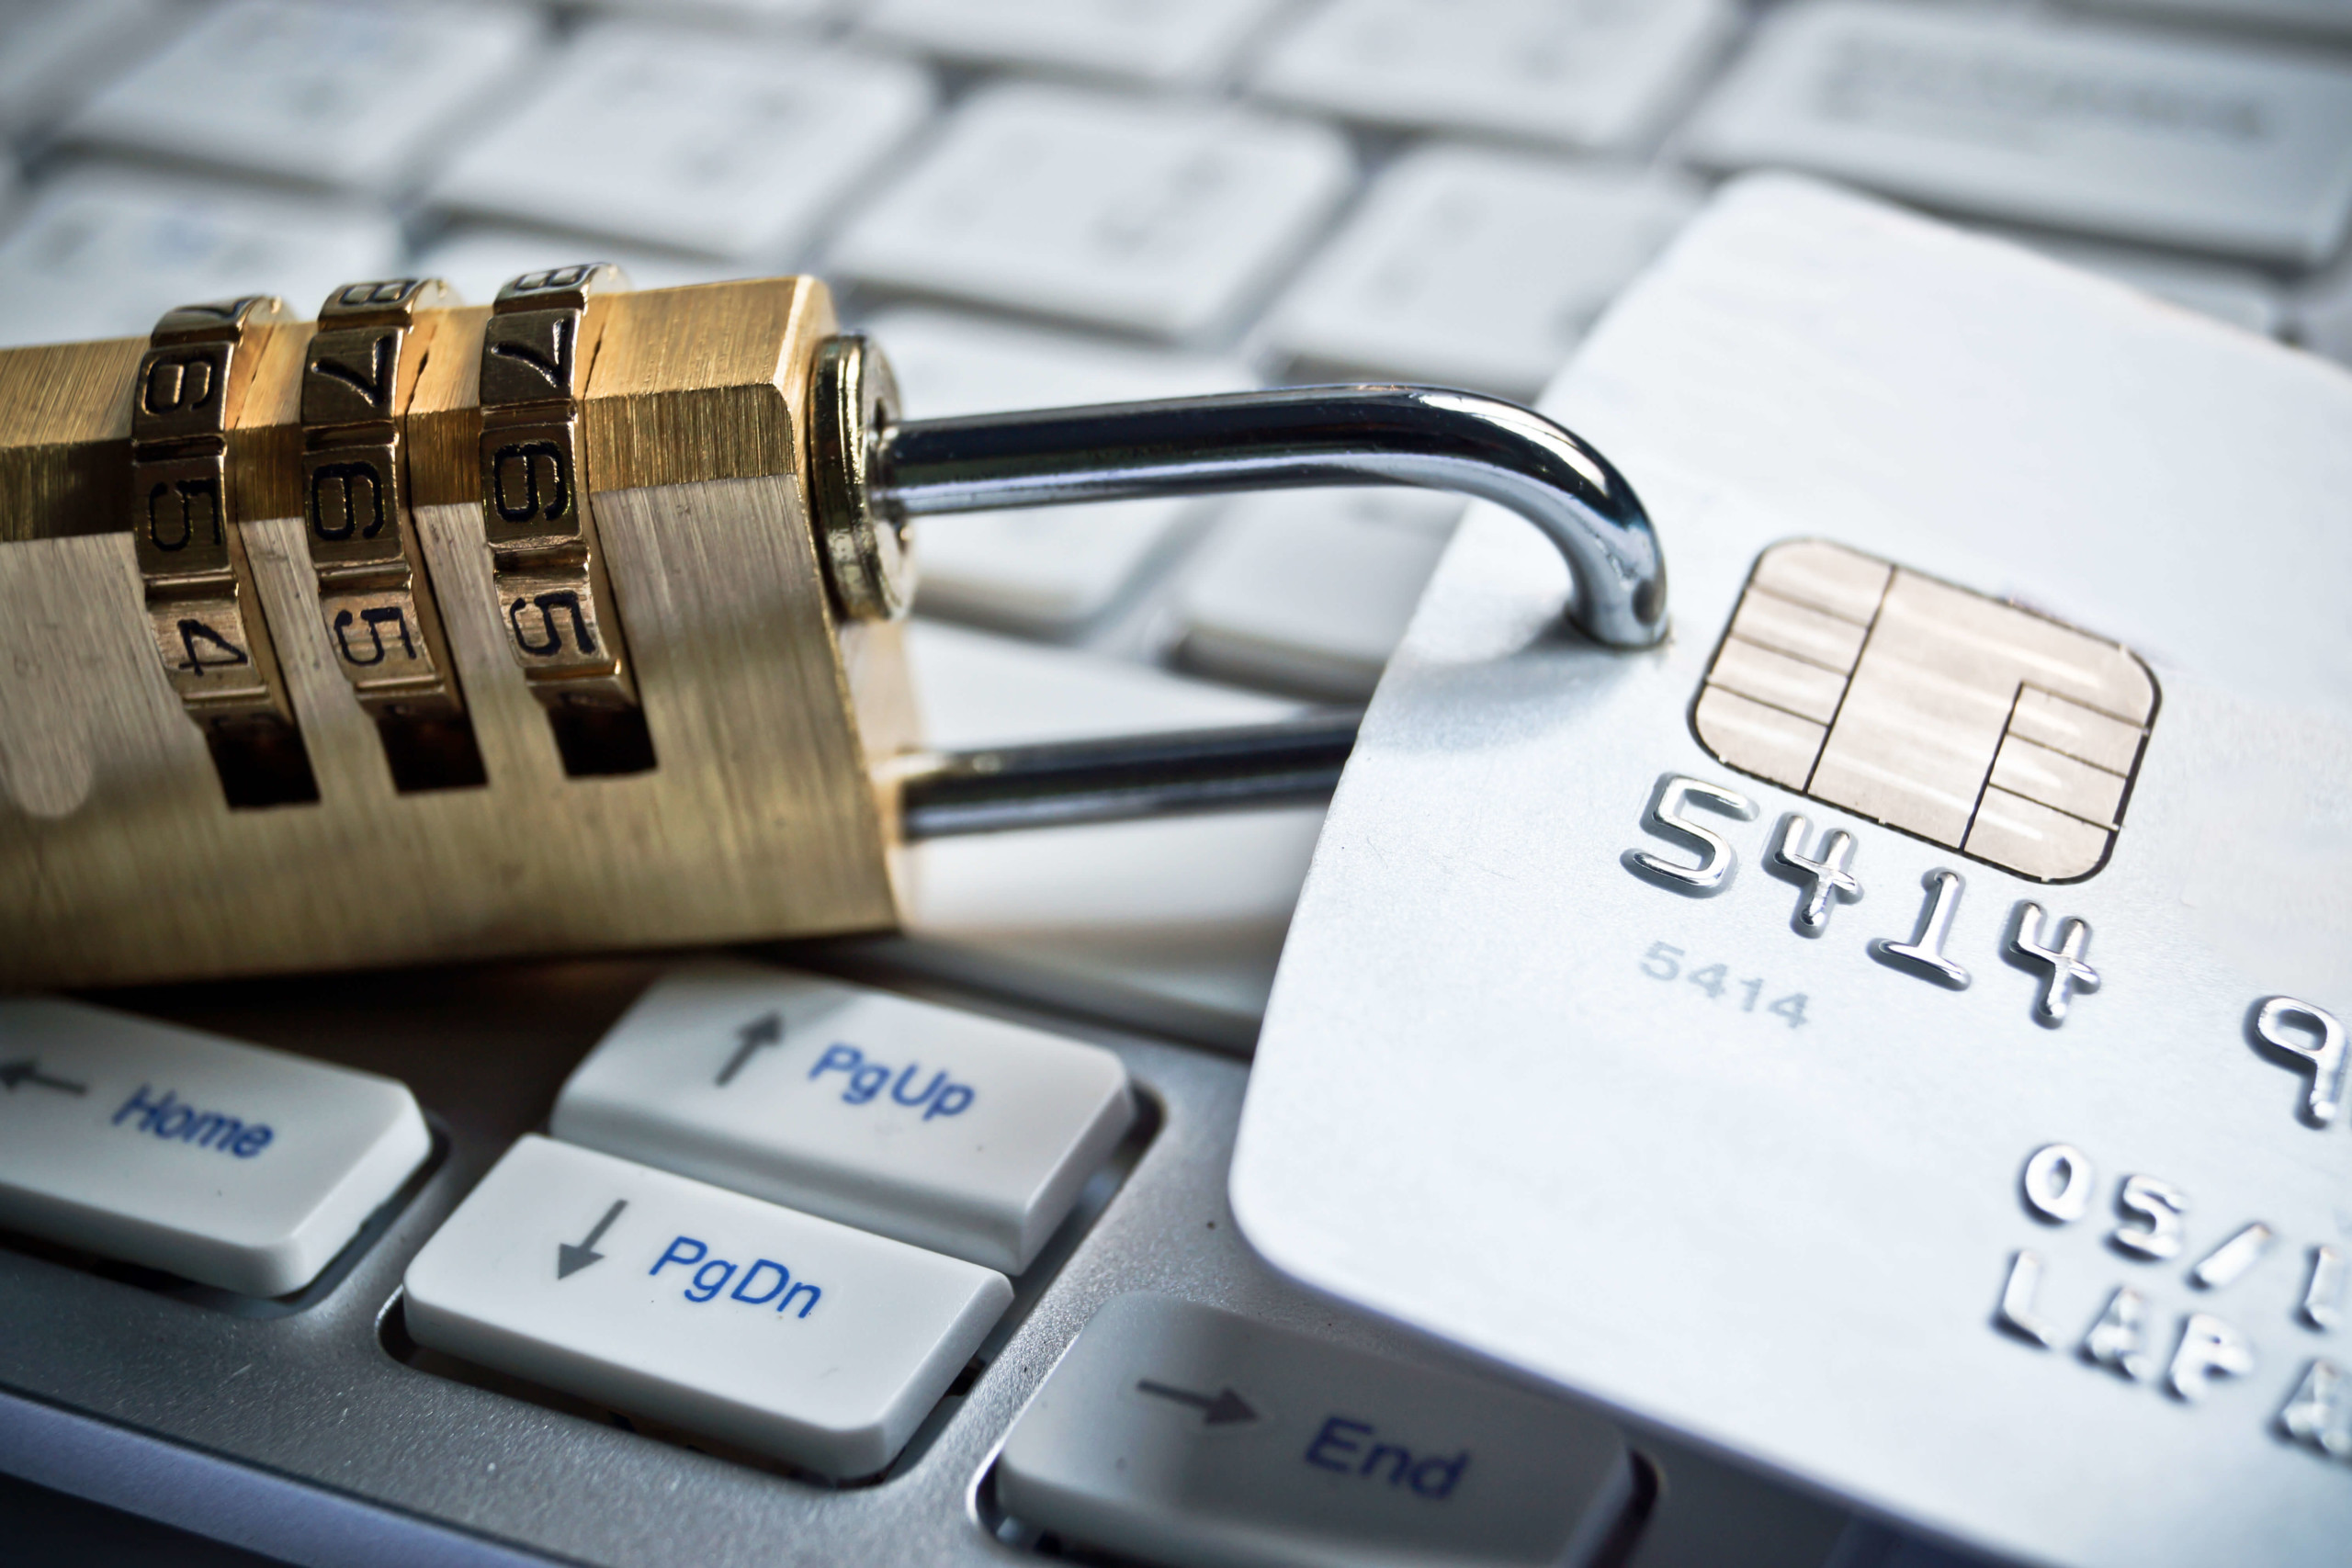 Looking for fraud and chargeback protection? We have creative solutions to help you and your business.